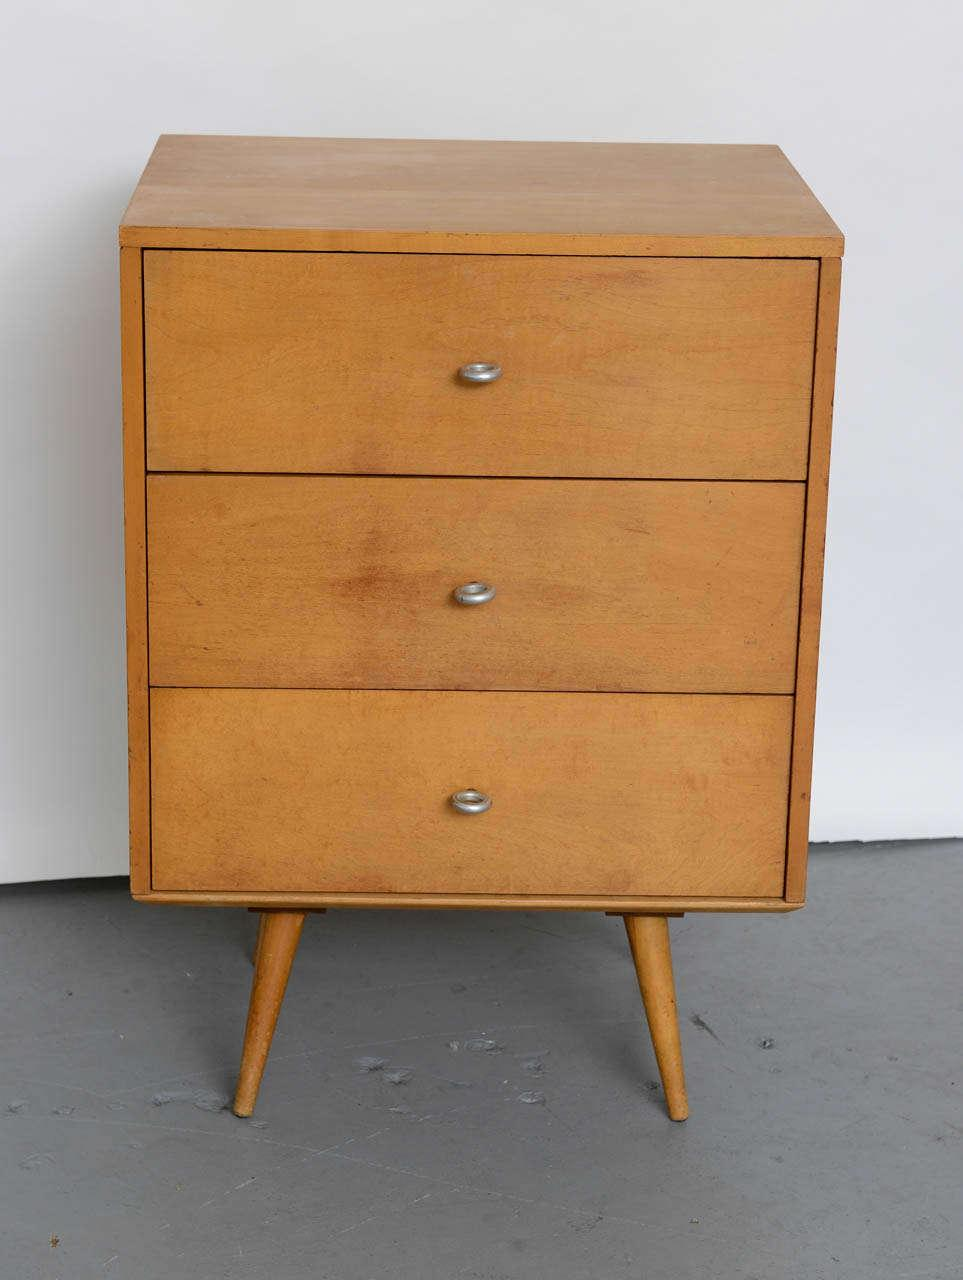 Paul Mccobb Planner Group 3 Drawer Side Table/Nightstand In Solid Maple  1950s   Image